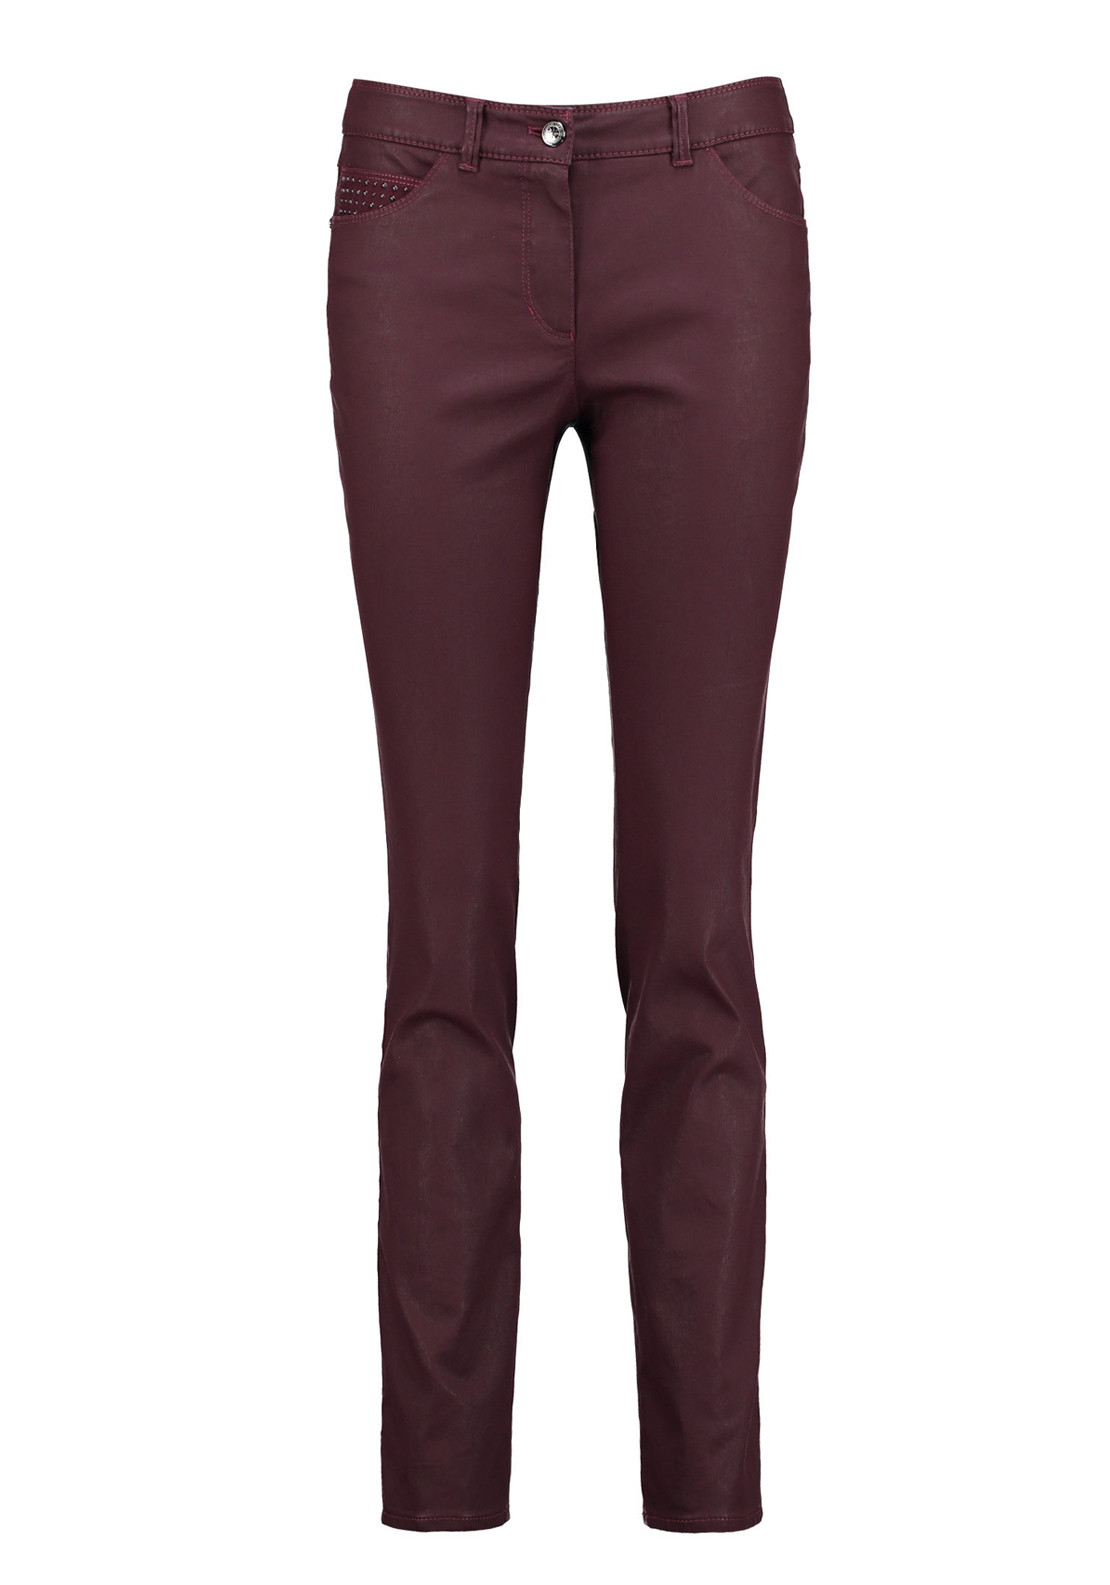 Gerry Weber Coated Straight Leg Jeans, Wine